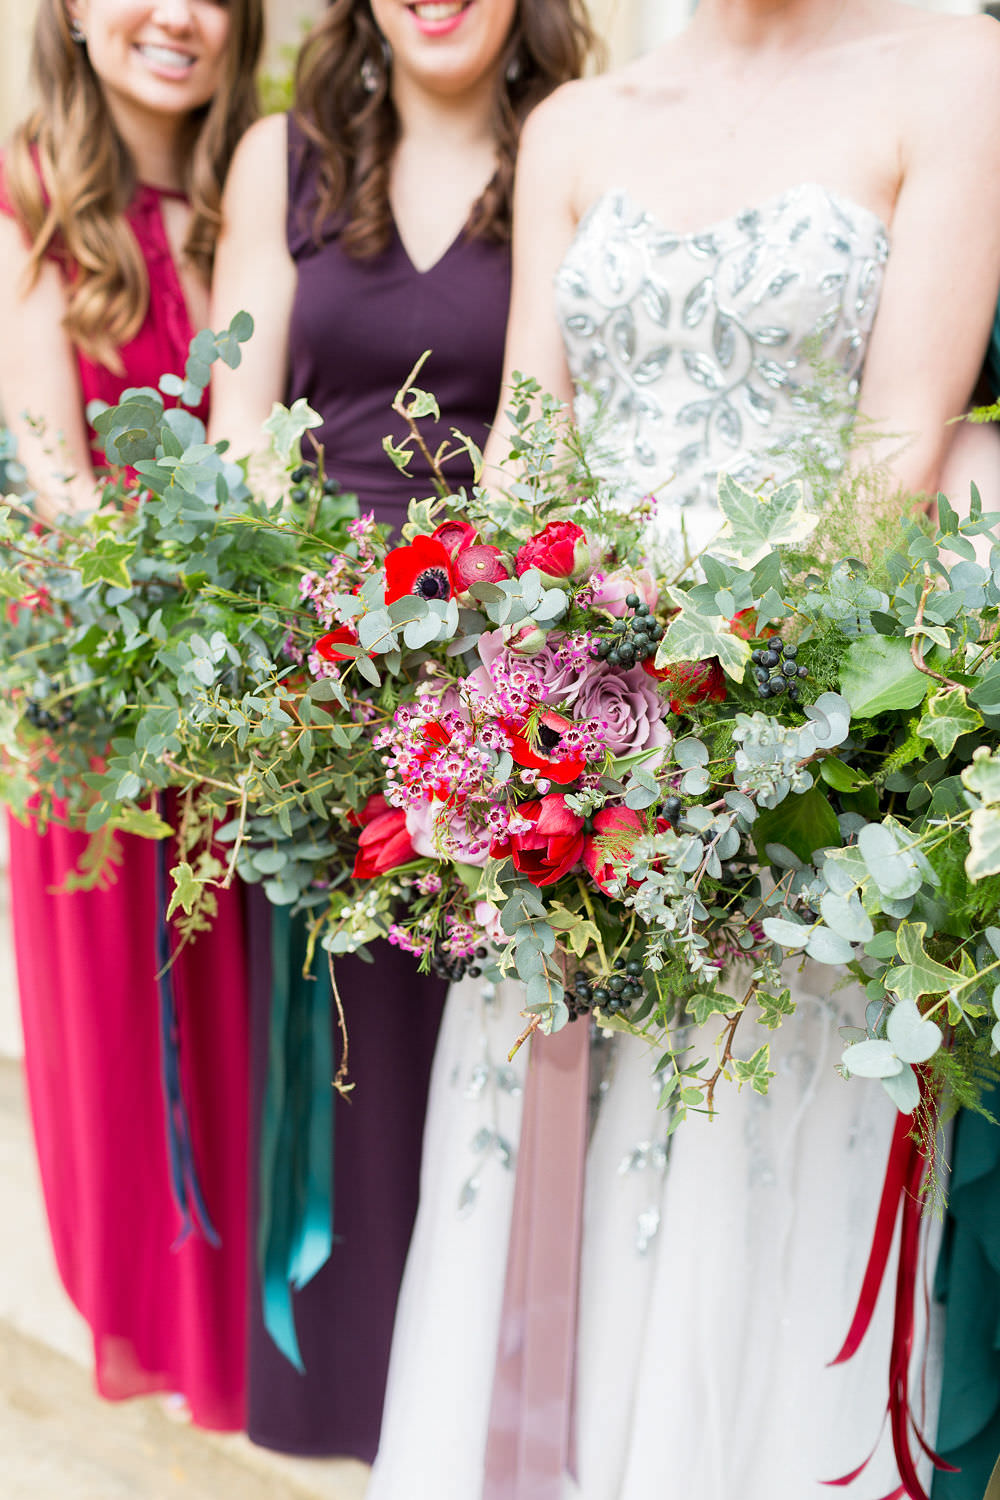 Bouquets Bride Bridal Bridesmaid Greenery Foliage Red Pink Rose Poppy Tulip Highcliffe Castle Wedding Bowtie and Belle Photography